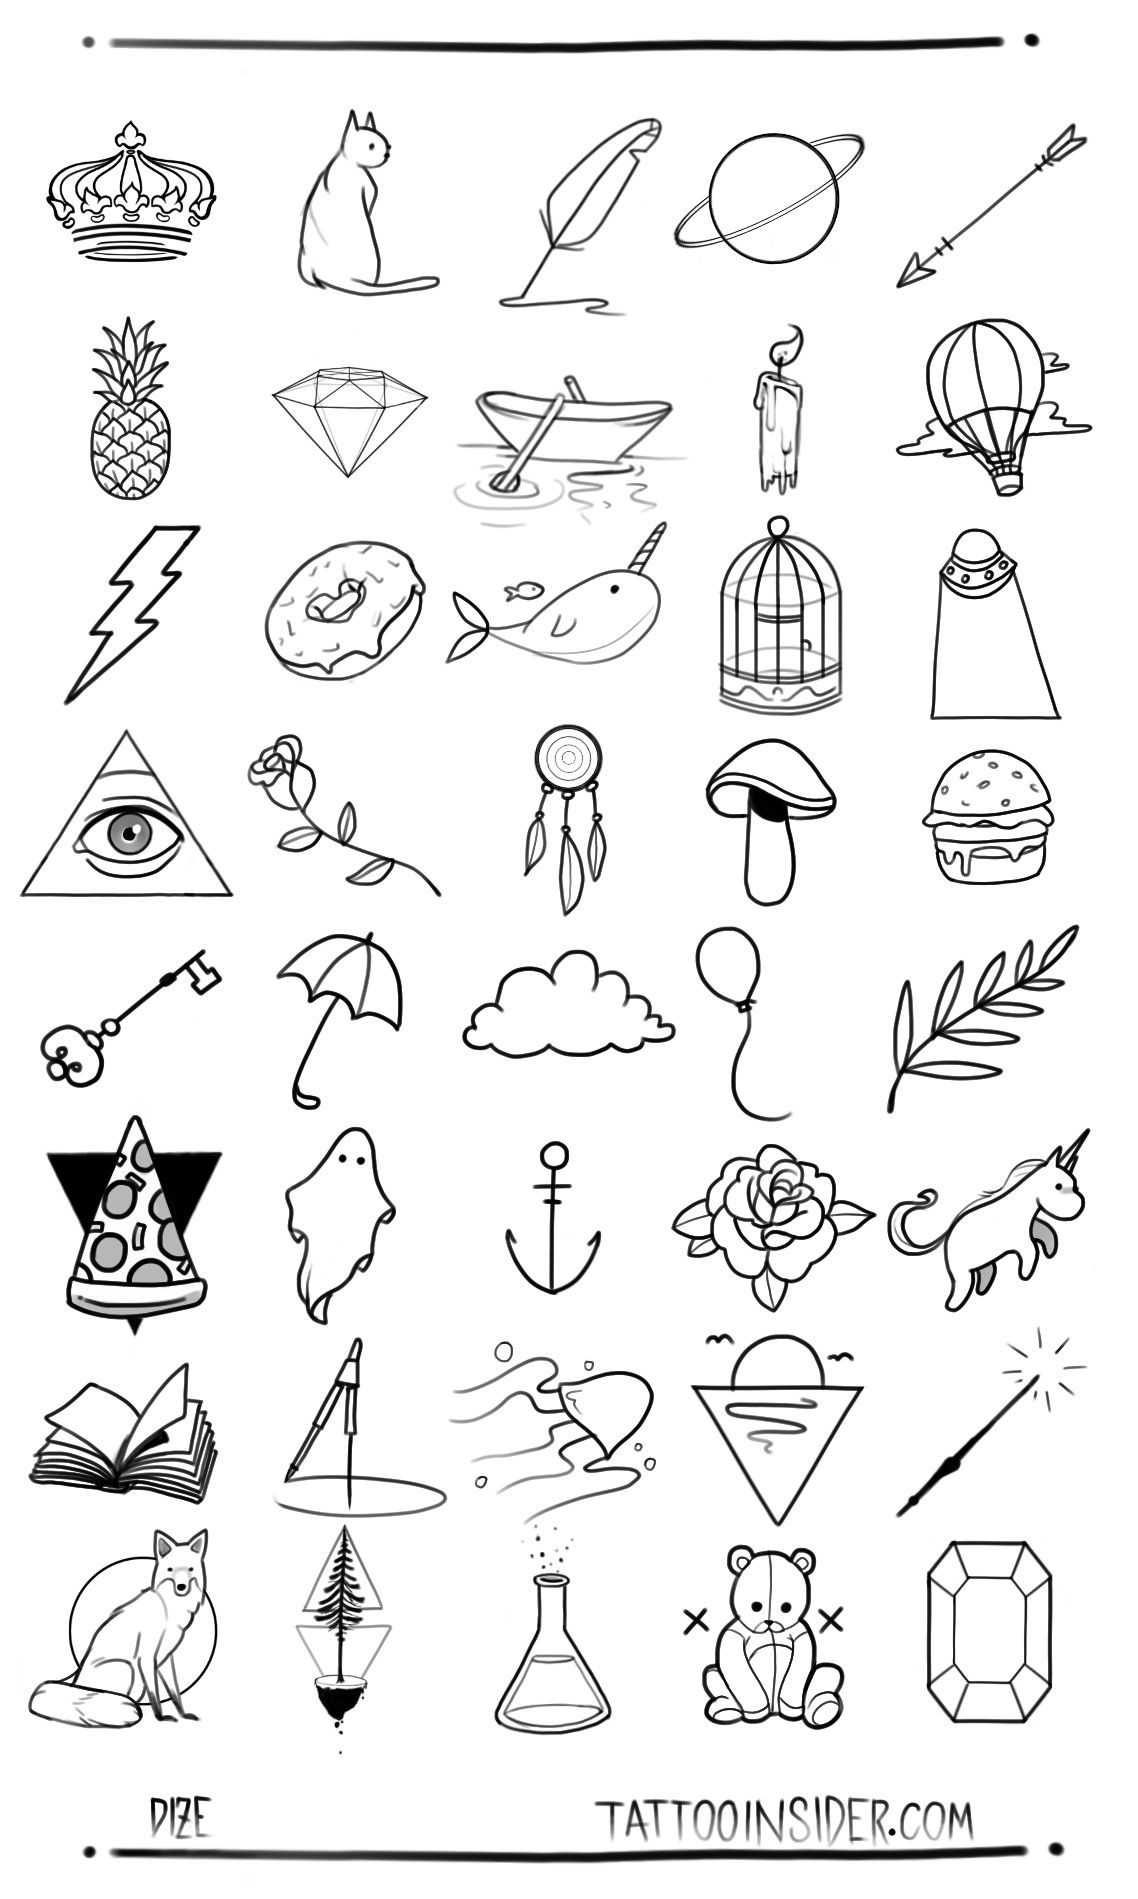 80 Free Small Tattoo Designs Small Tattoos For Guys Small